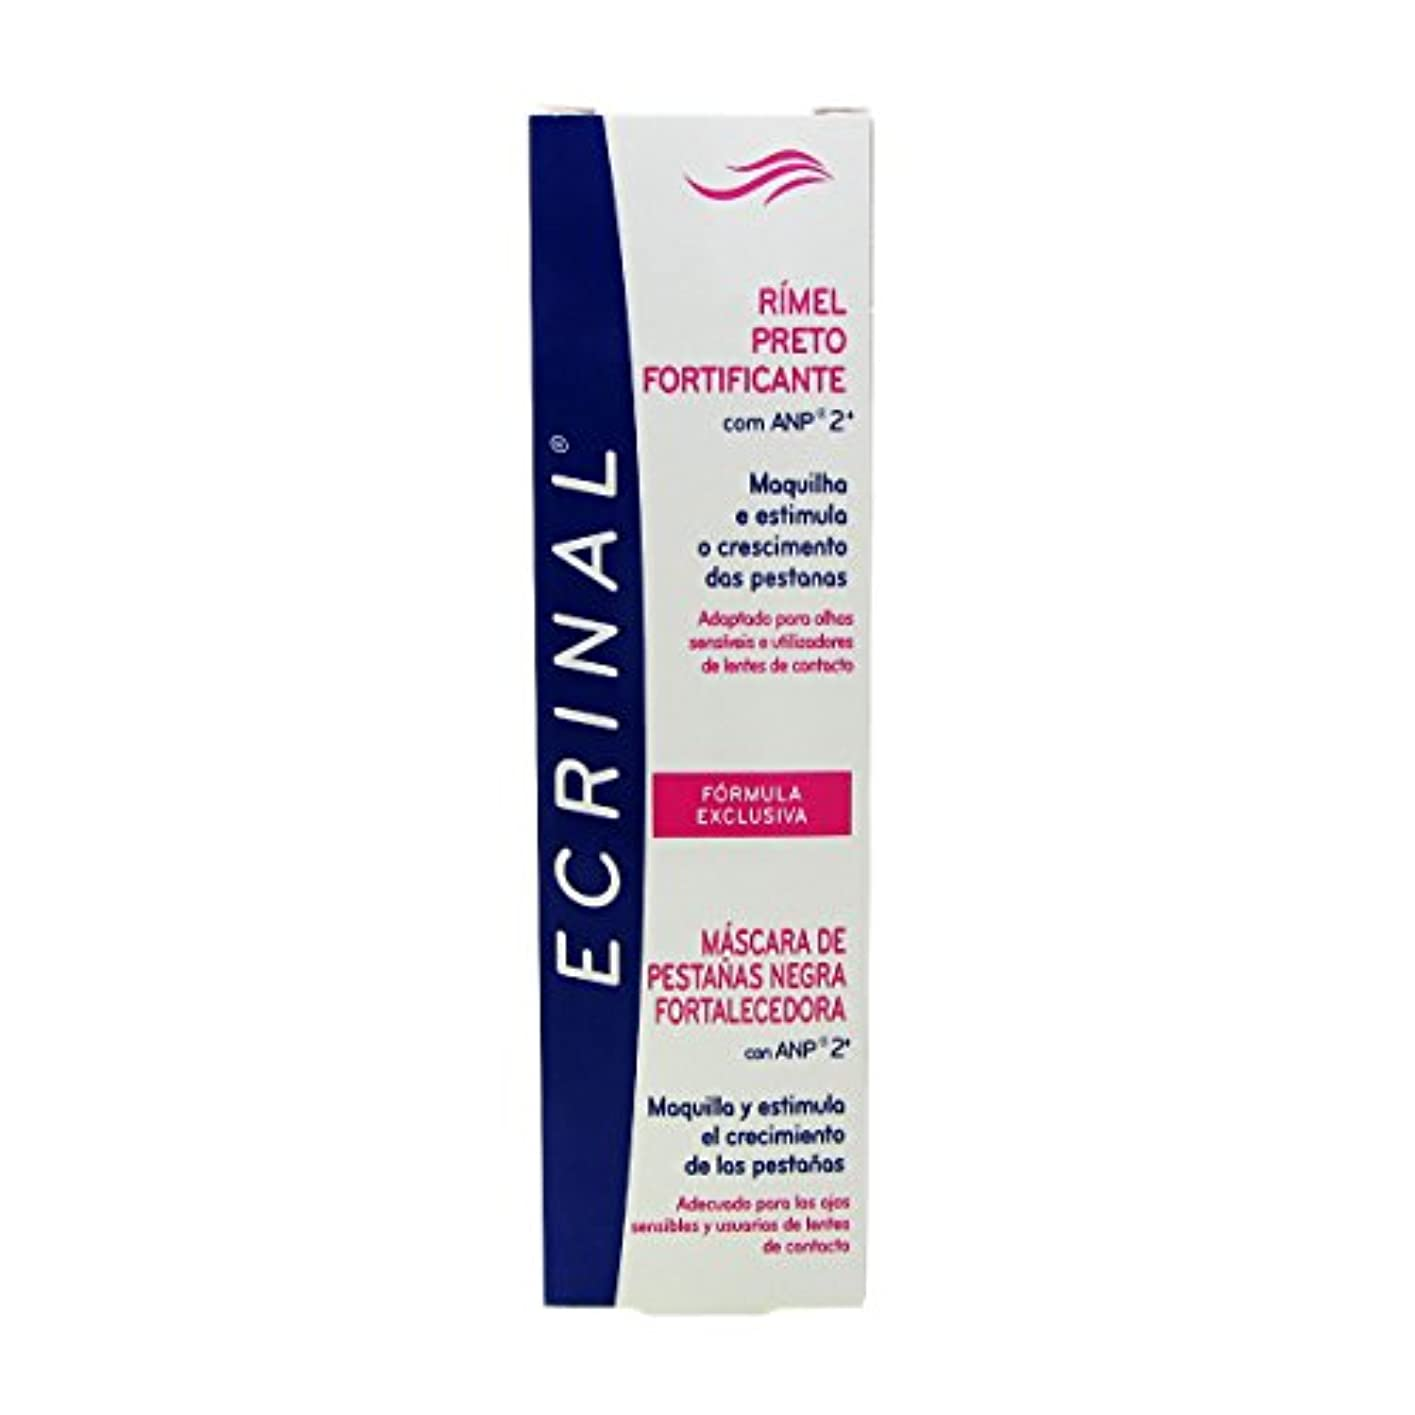 Ecrinal Strengthening Black Mascara 7ml [並行輸入品]